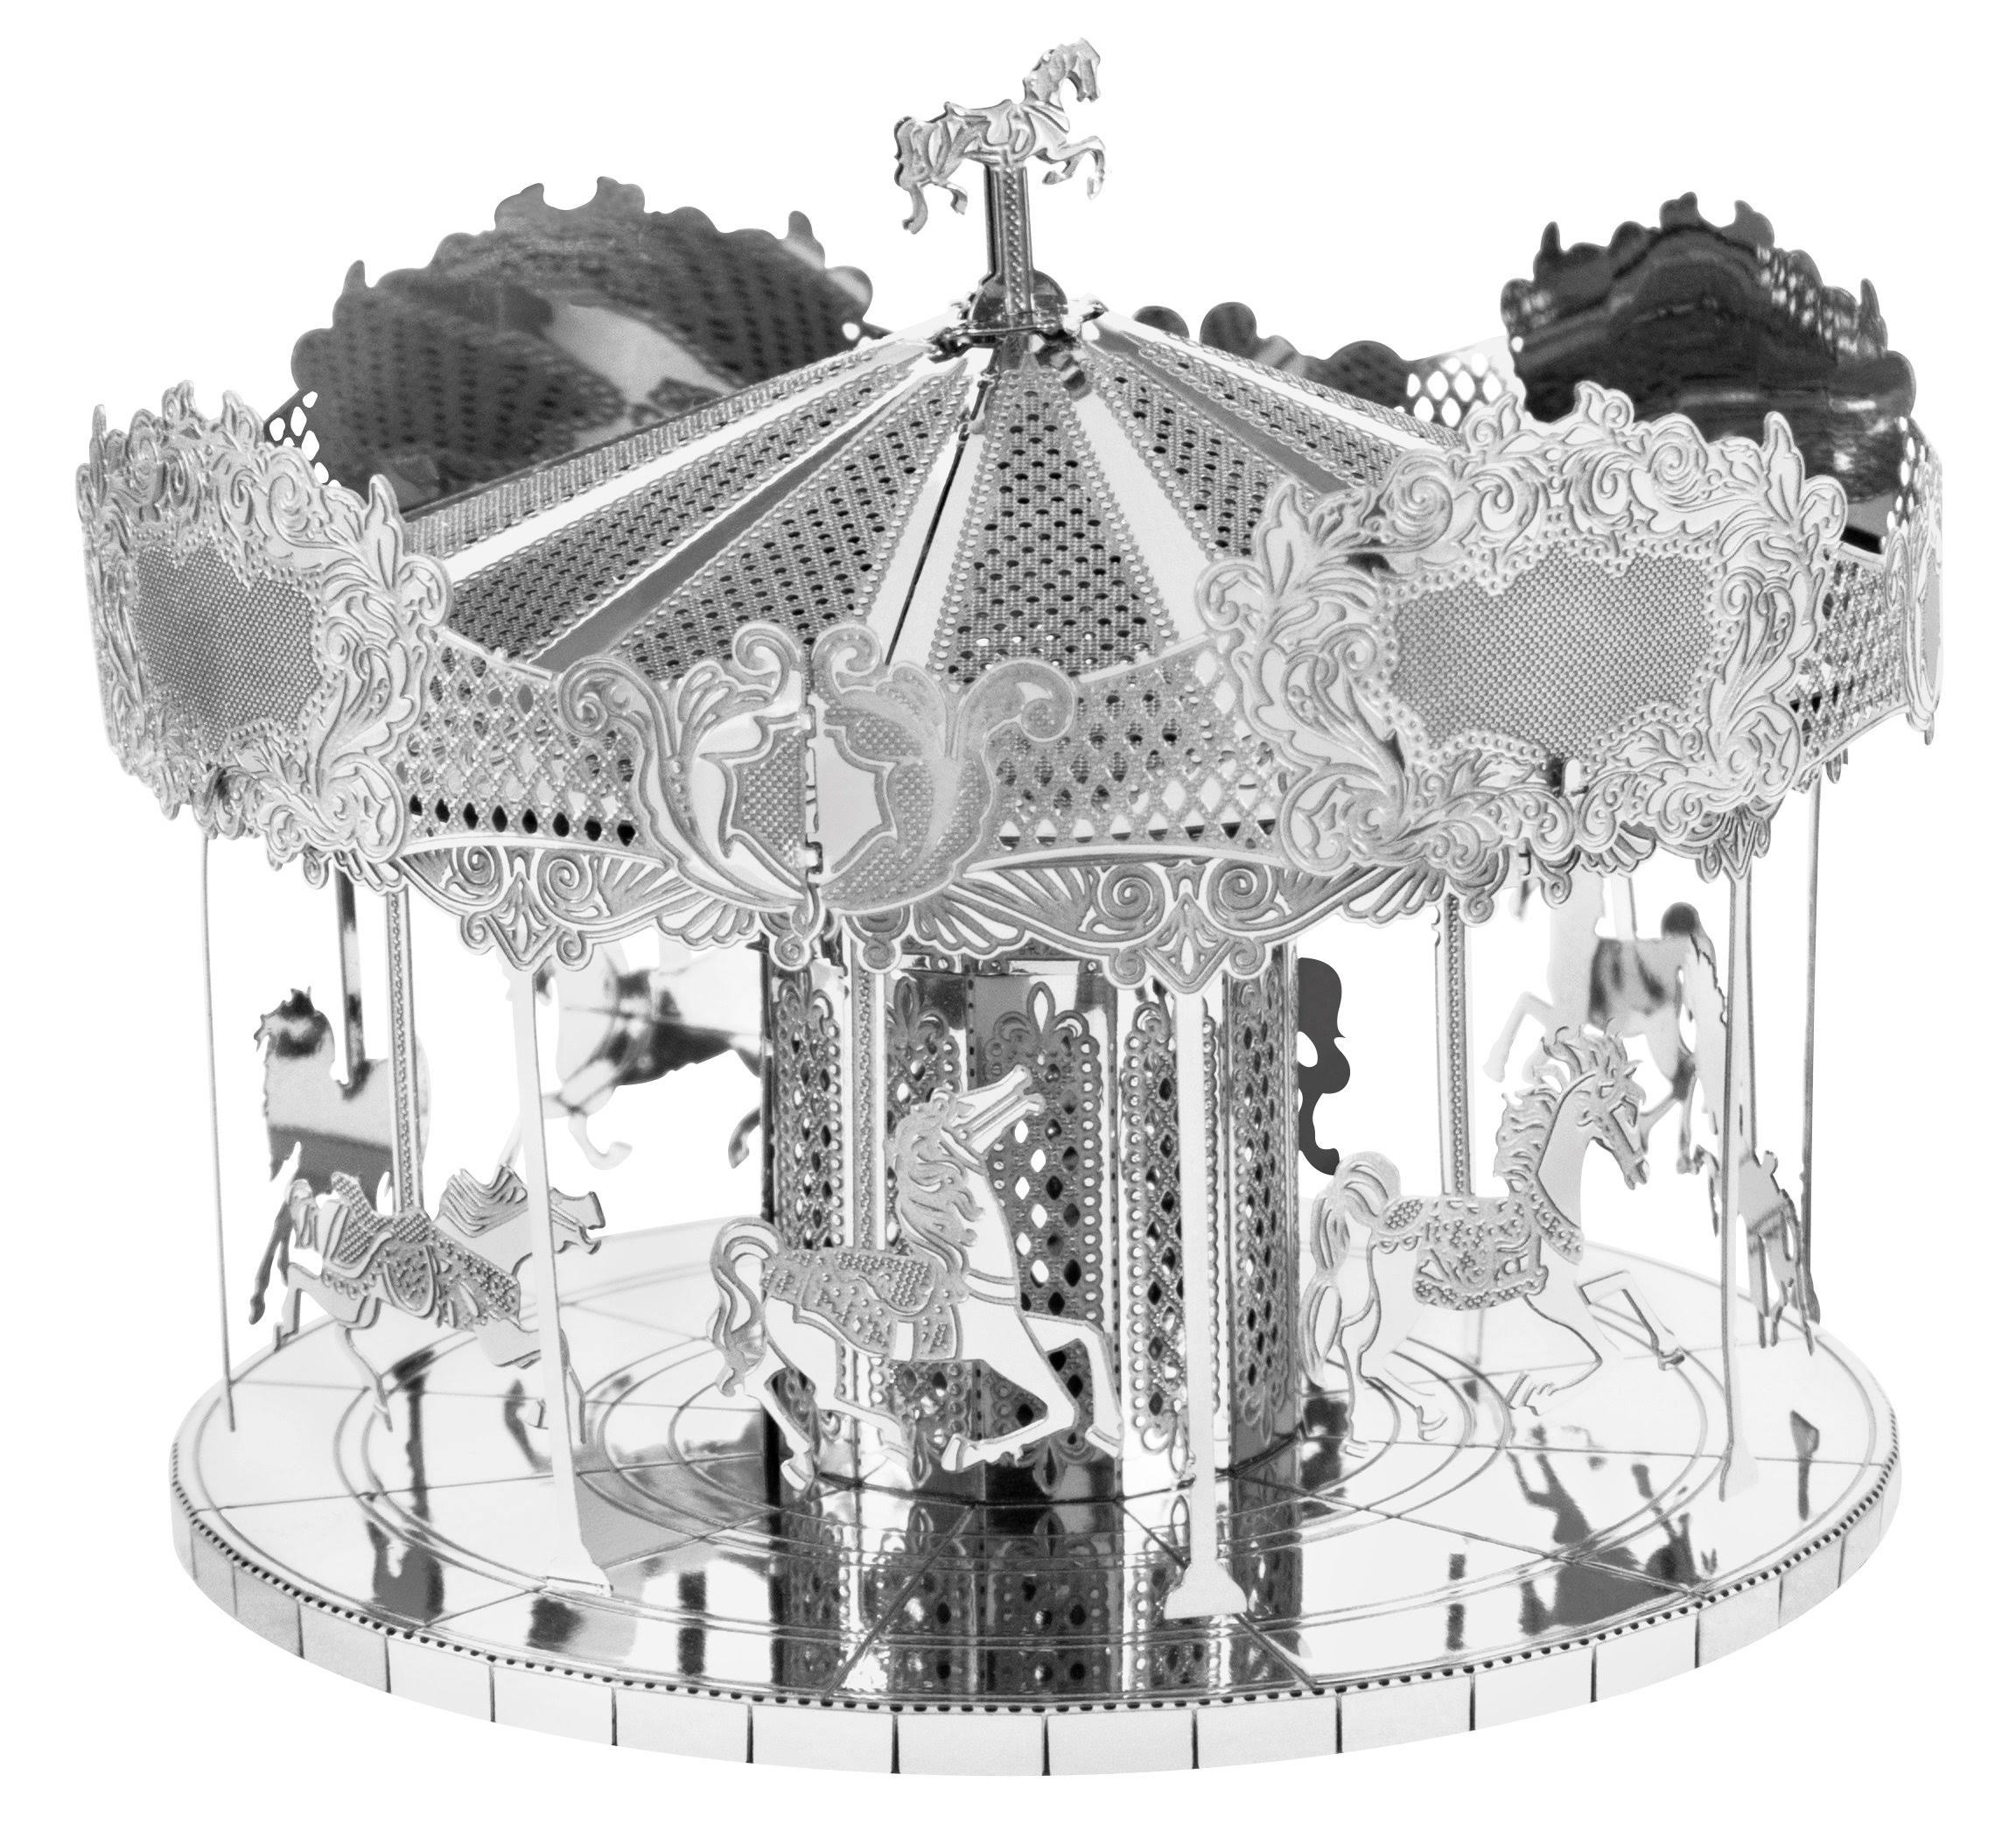 Fascinations Metal Earth 3D Laser Cut Model - Merry Go Round